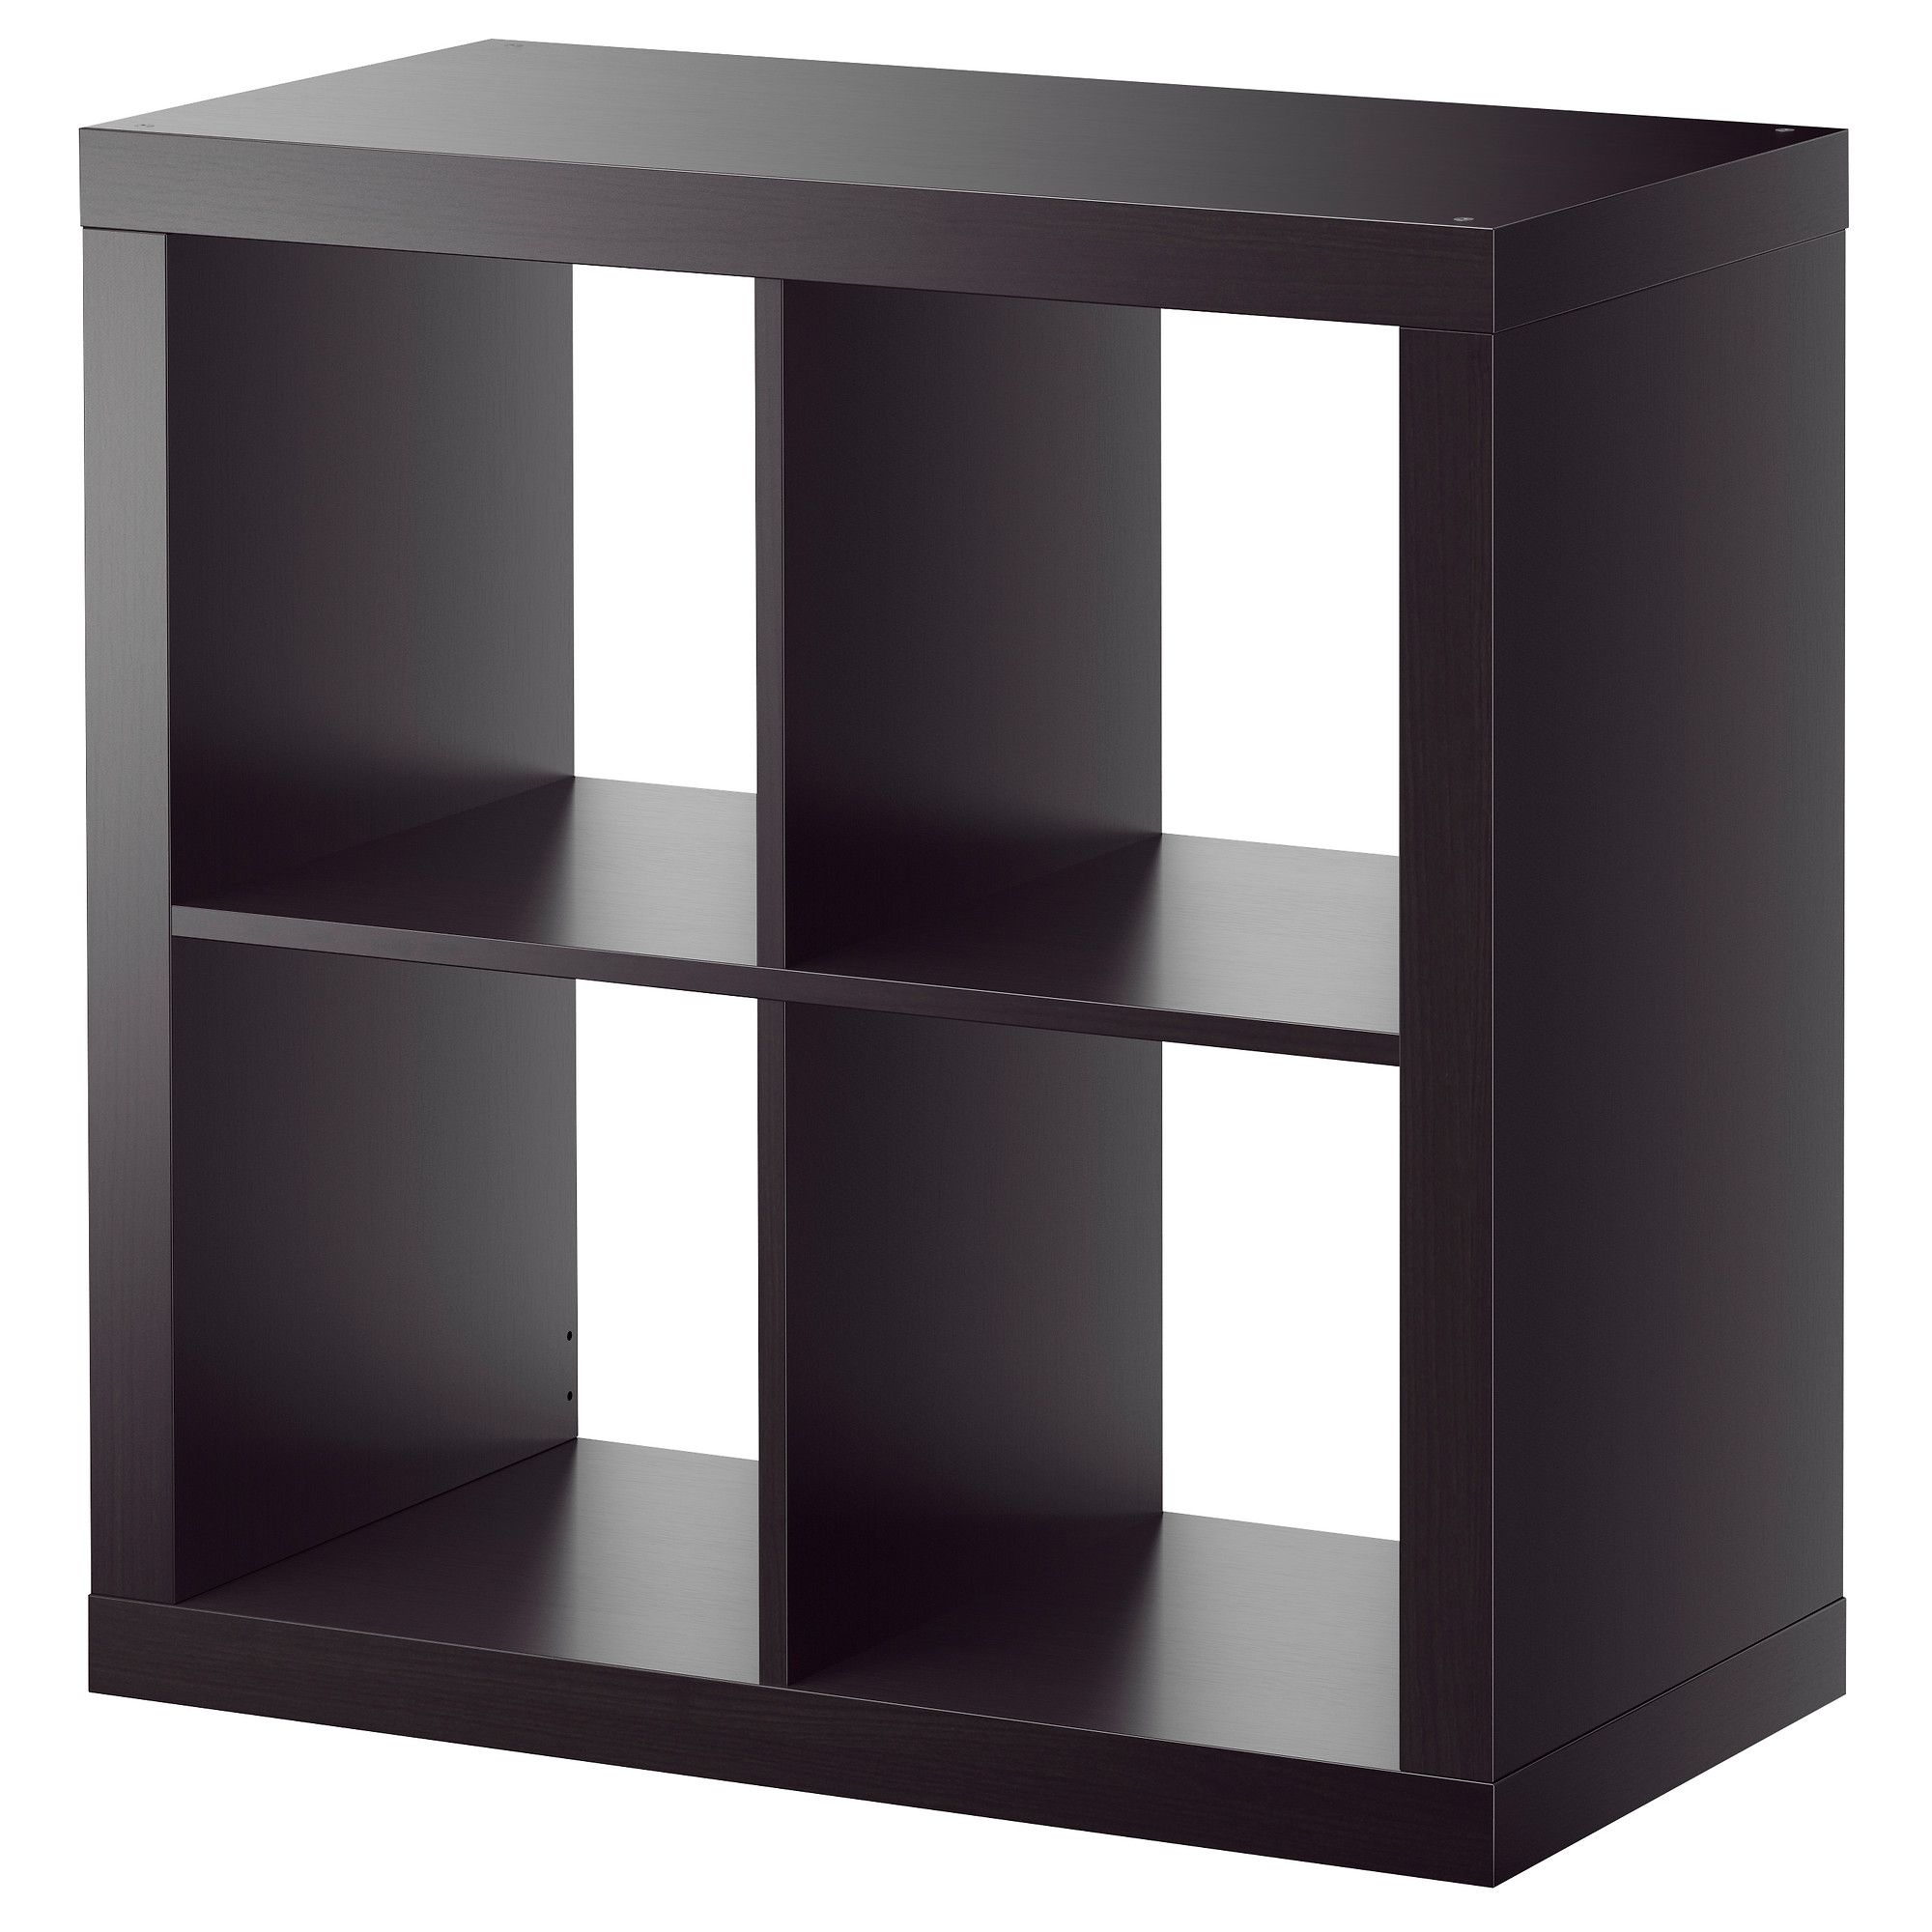 Us Furniture And Home Furnishings Ikea Shelving Unit Ikea Living Room Ikea Expedit Bookcase